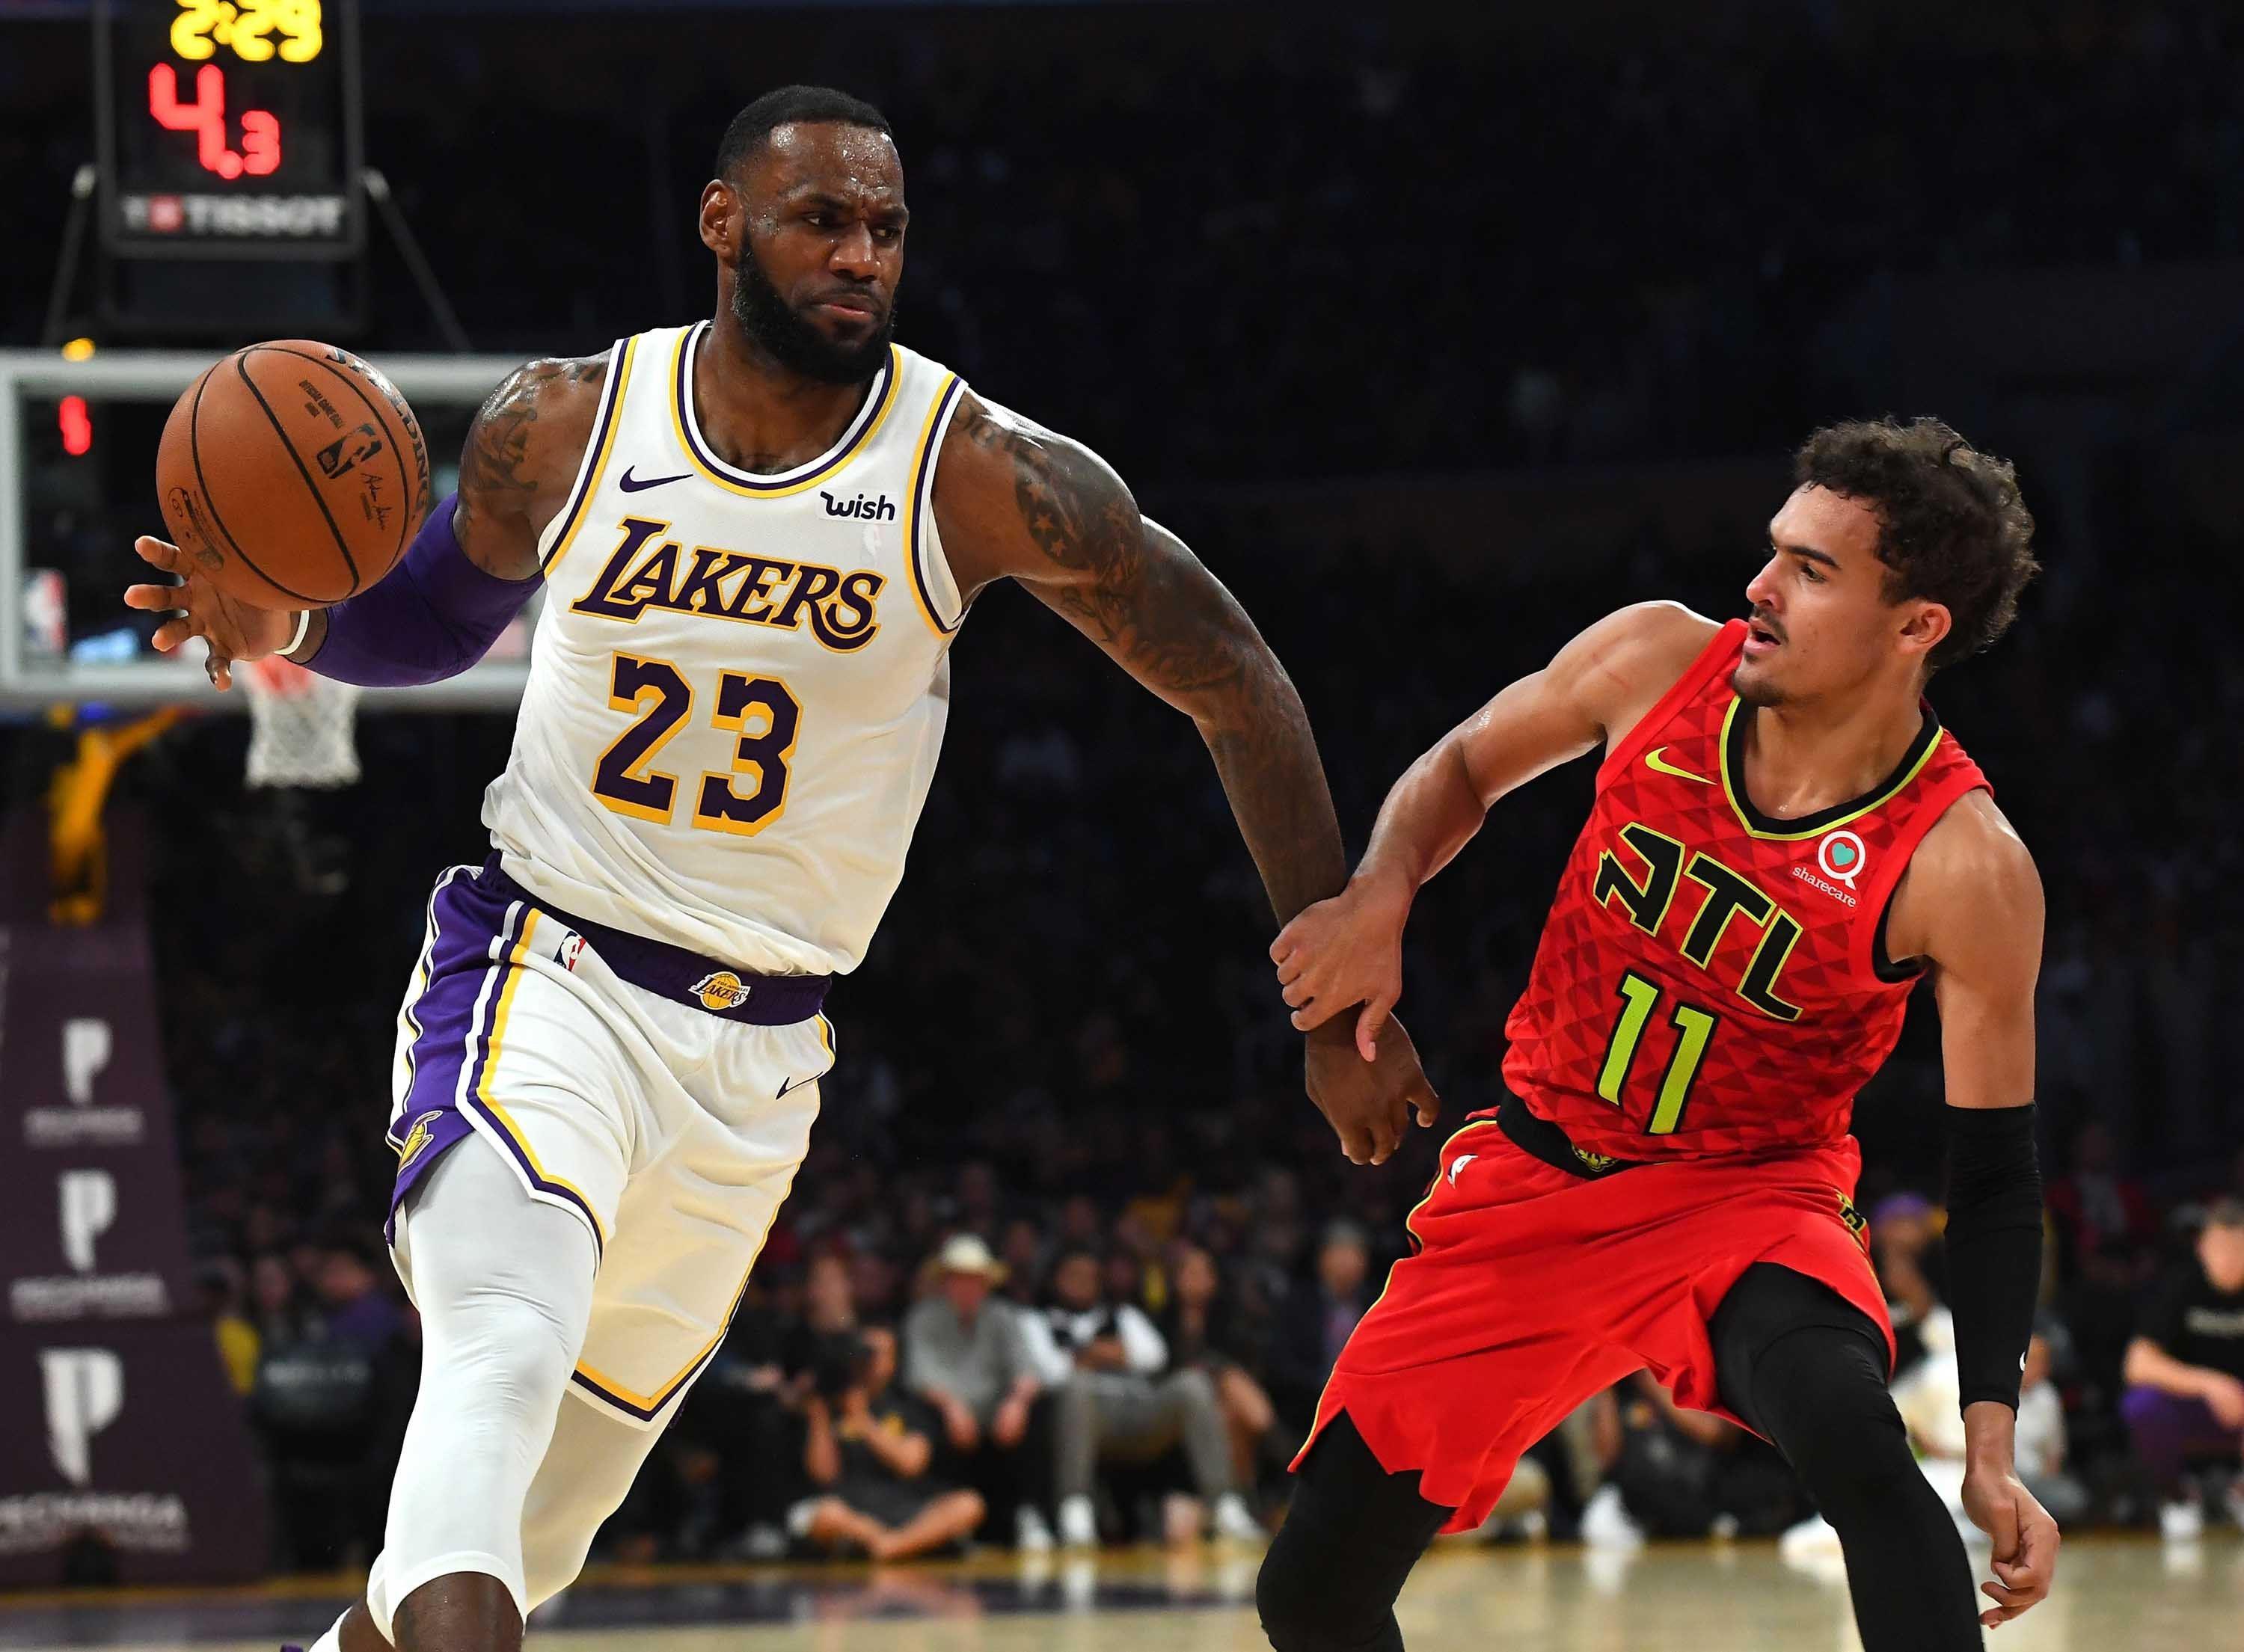 LeBron James and Trae Young set the NBA alight